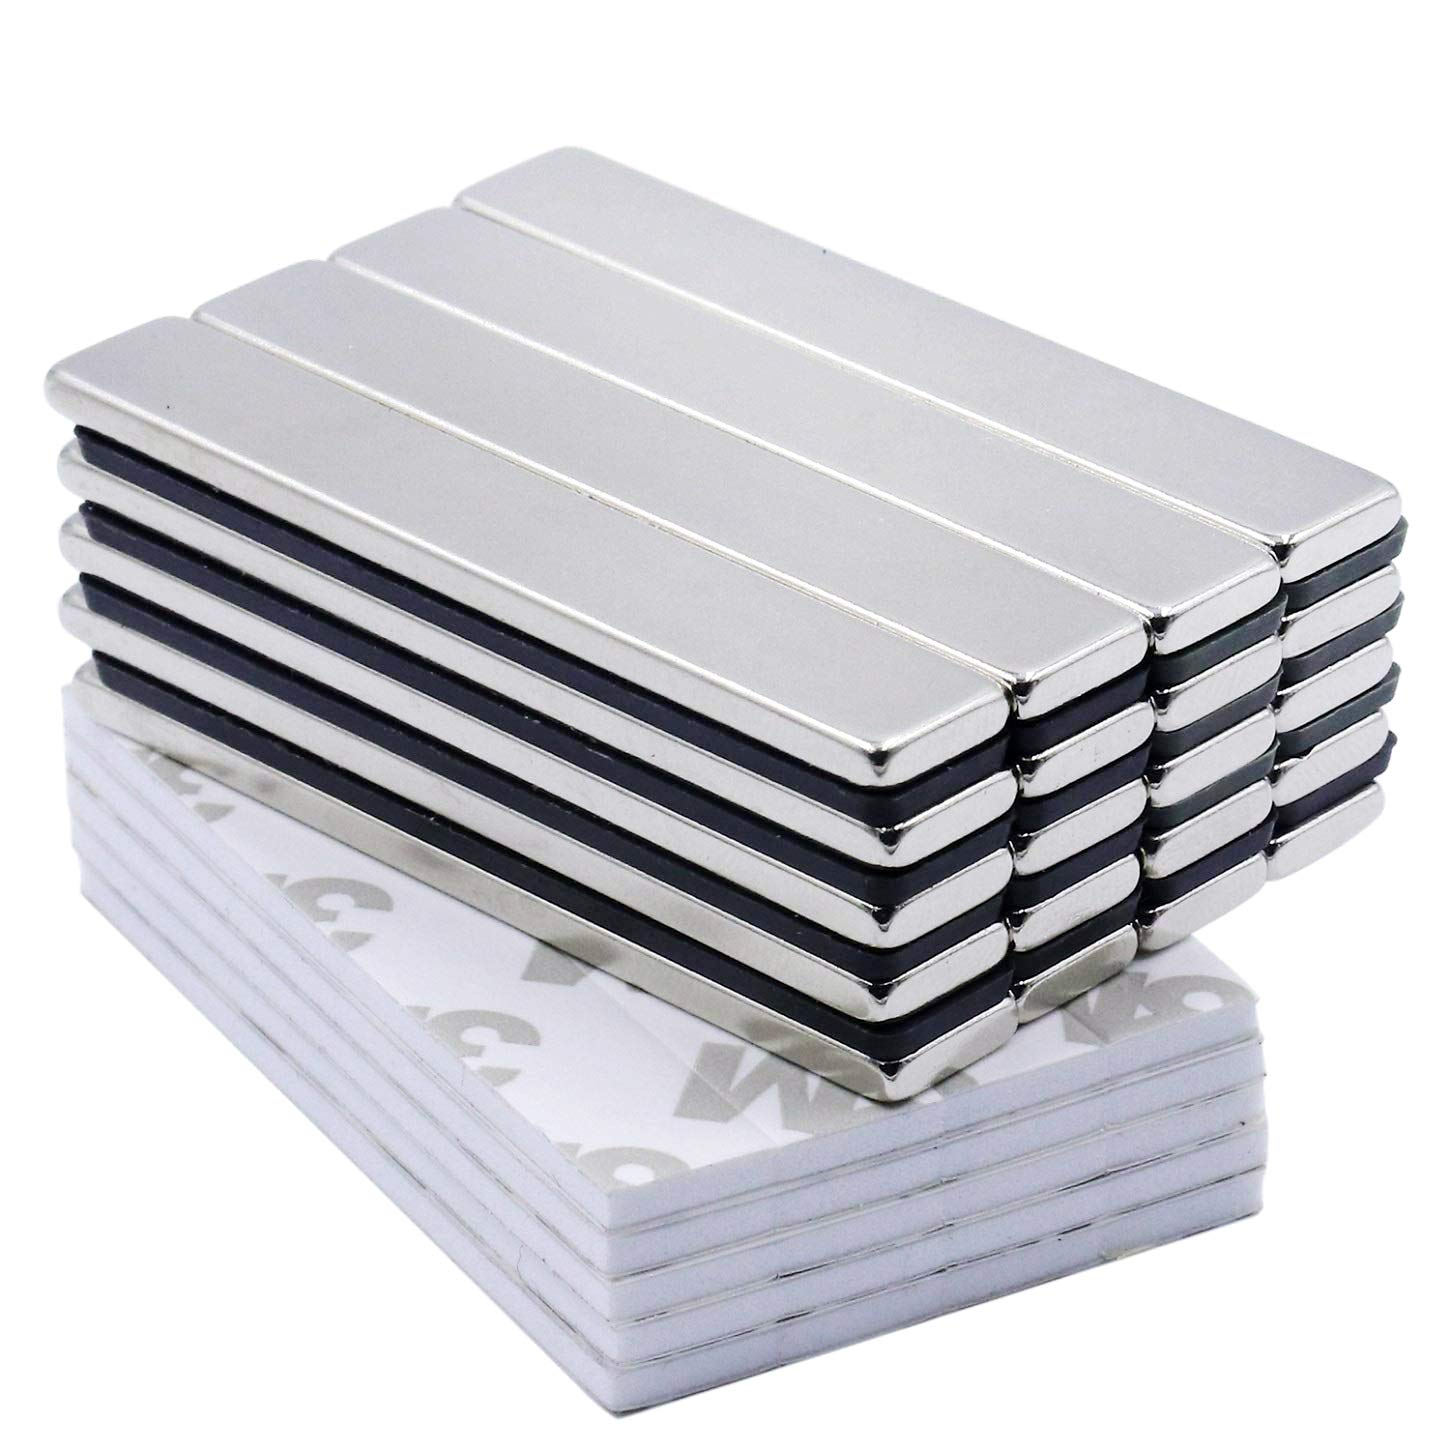 Pack of 1 60mm x 12mm x 5mm Extra Thick Strong Neo Neodymium Block Bar Magnet